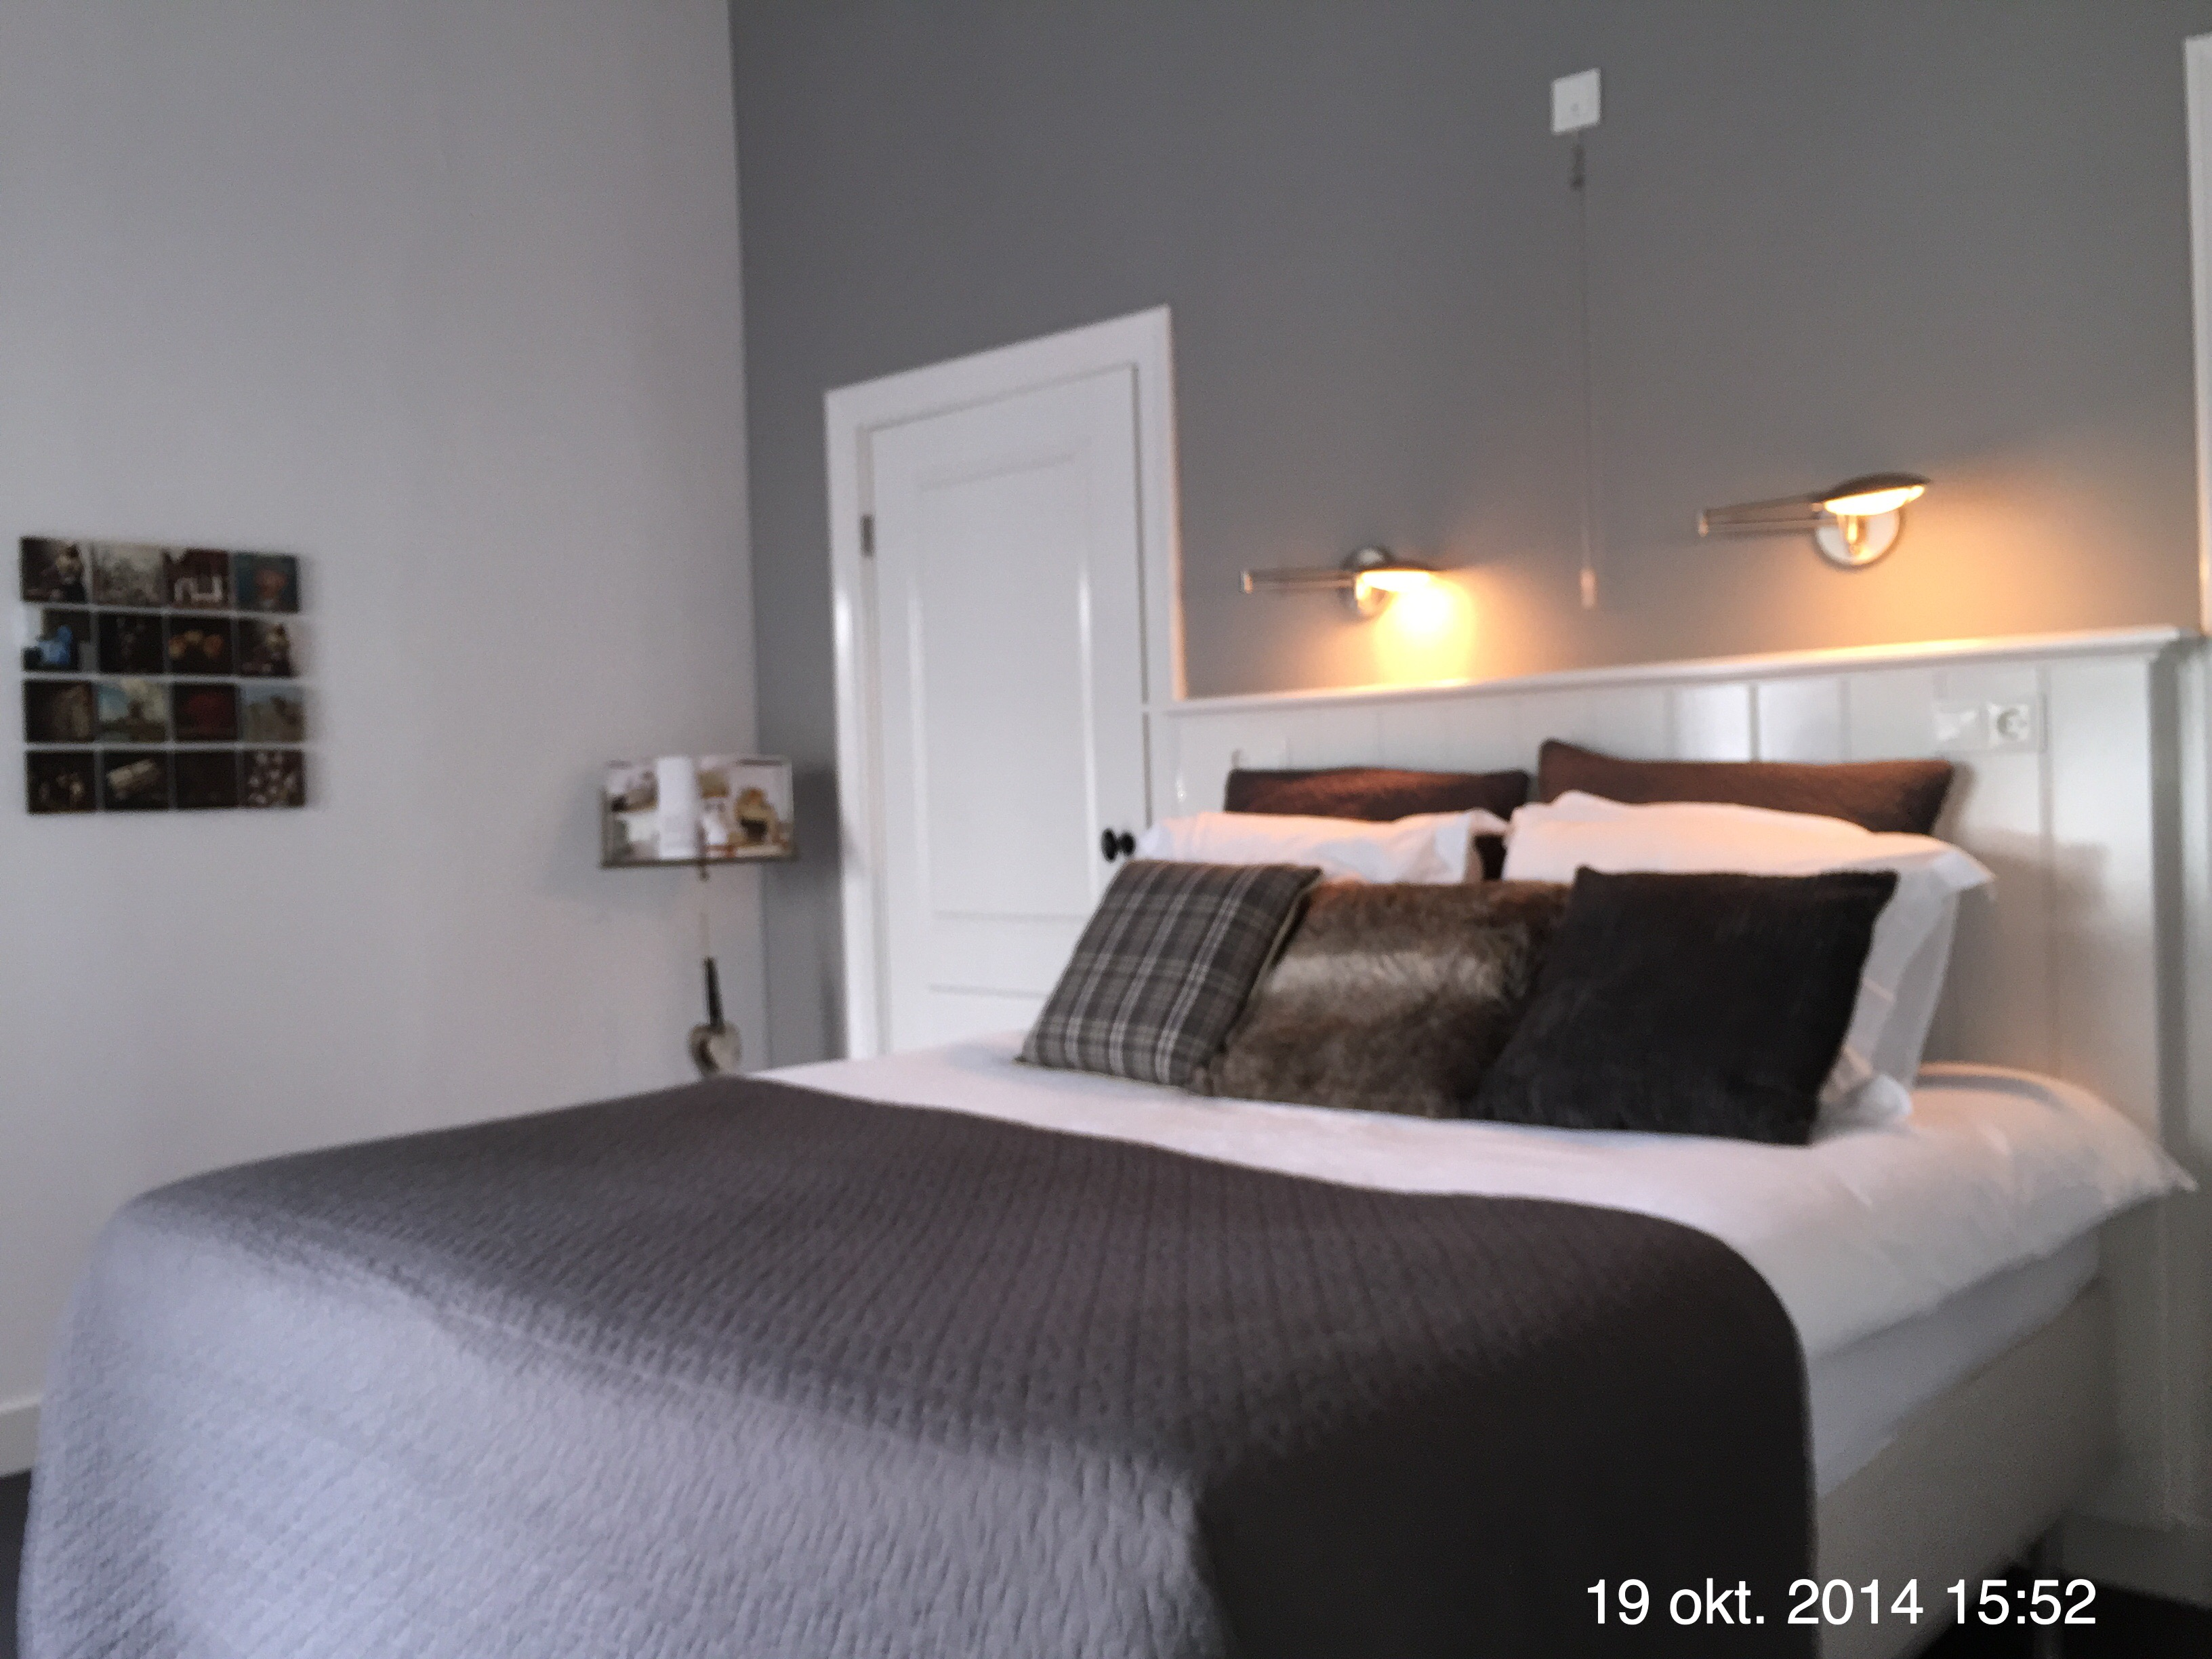 Foto s en recensies bed breakfast diemerbrug - Grijze en violette kamer ...